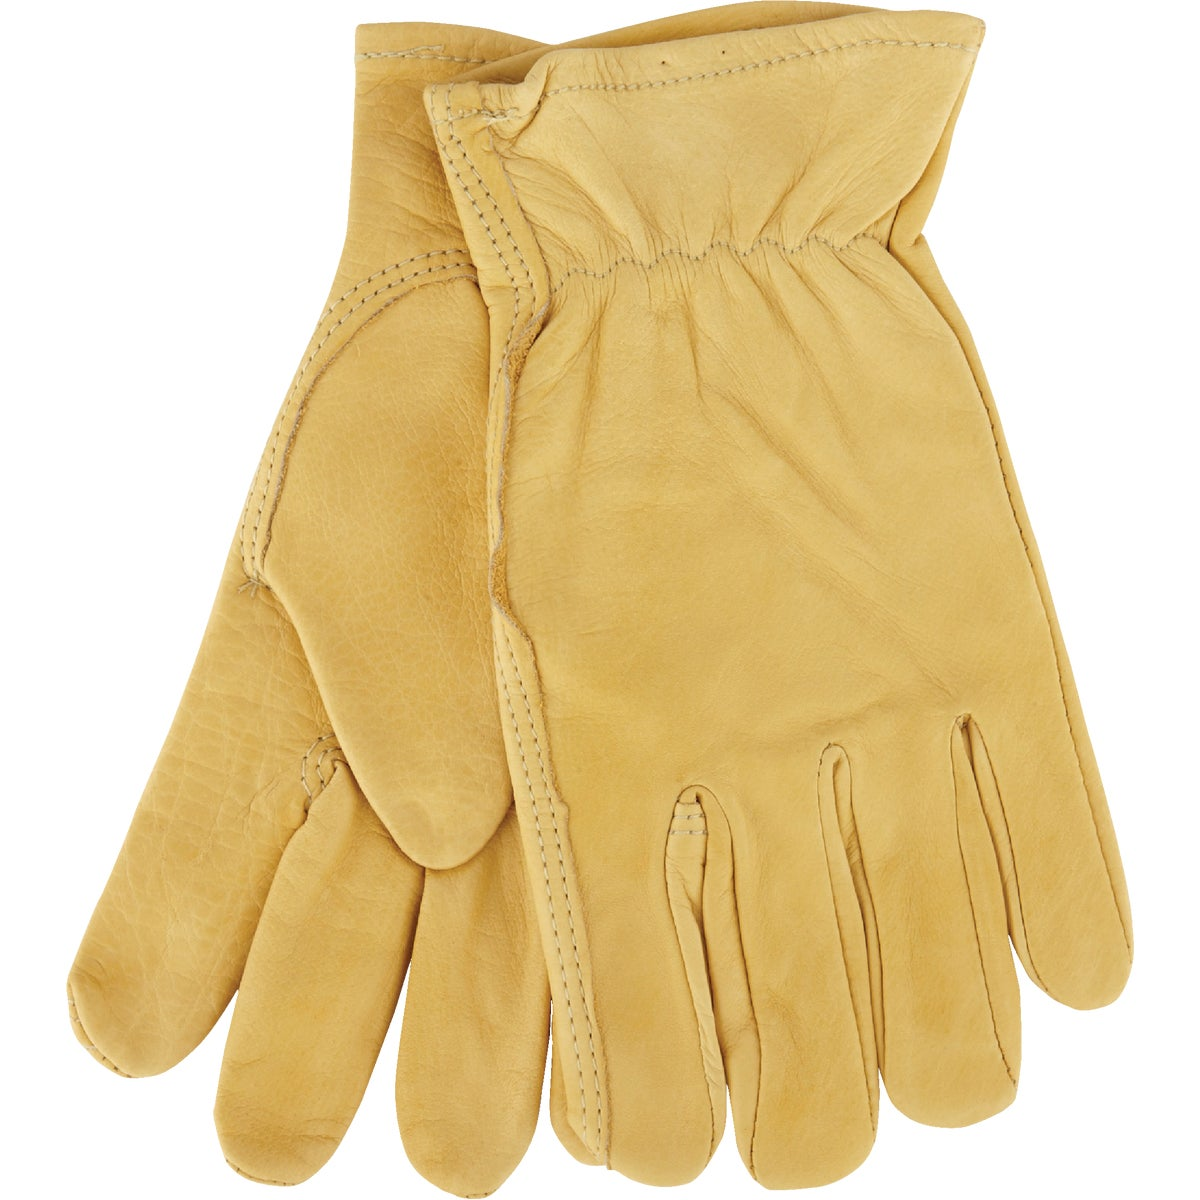 XL COWHIDE GRAIN GLOVE - 746795 by Do it Best